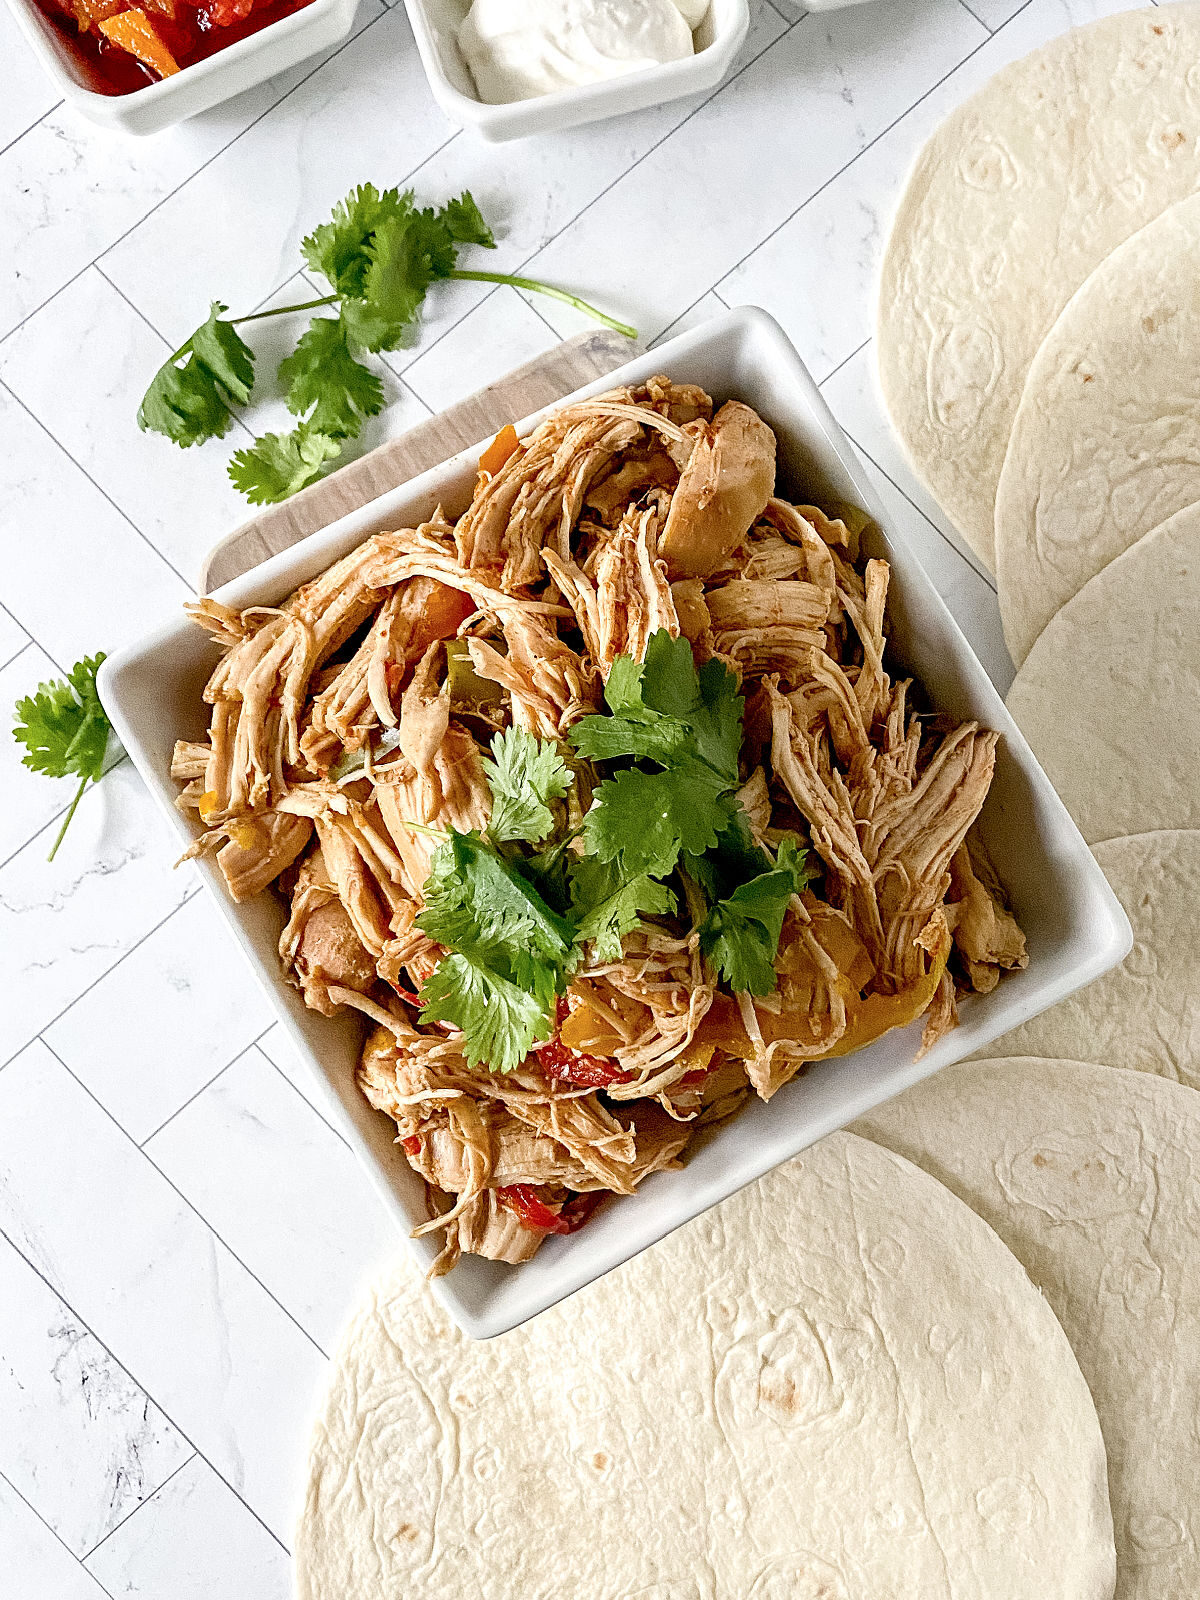 Bowl of shredded chicken topped with cilantro.